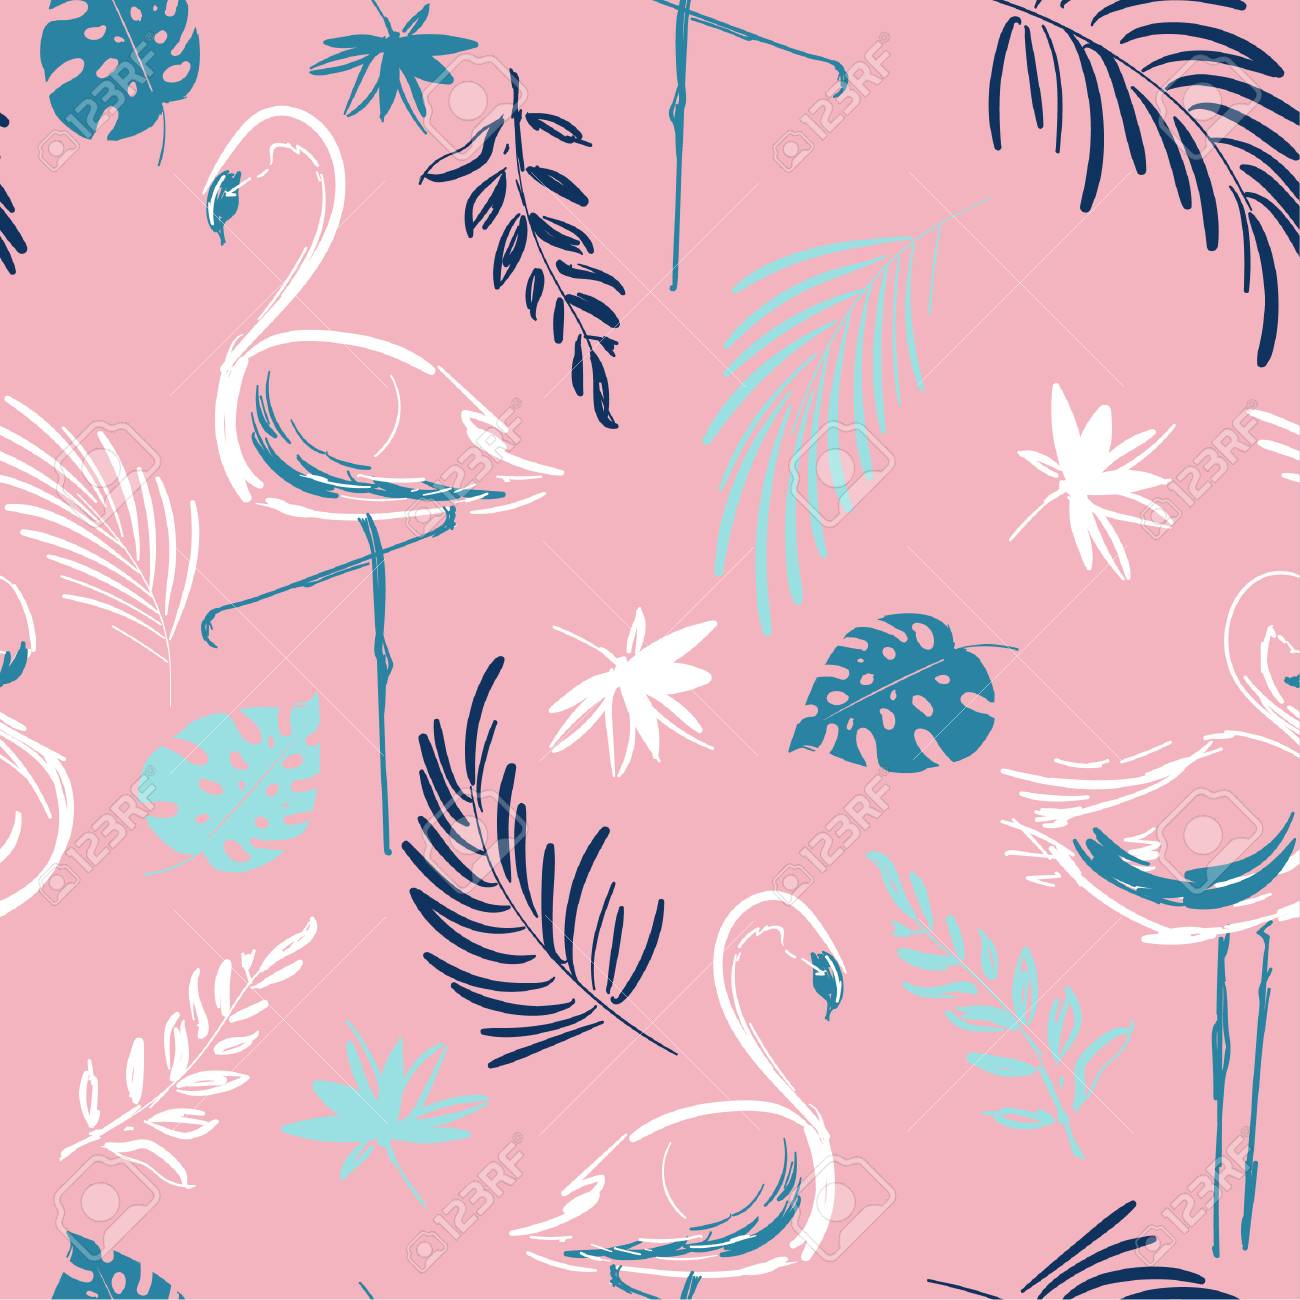 Beautiful Hand Drawing Tropical Motif Vector Flamingo Bird Leaves Tropical Royalty Free Cliparts Vectors And Stock Illustration Image 92102296 Download all photos and use them even for commercial projects. beautiful hand drawing tropical motif vector flamingo bird leaves tropical